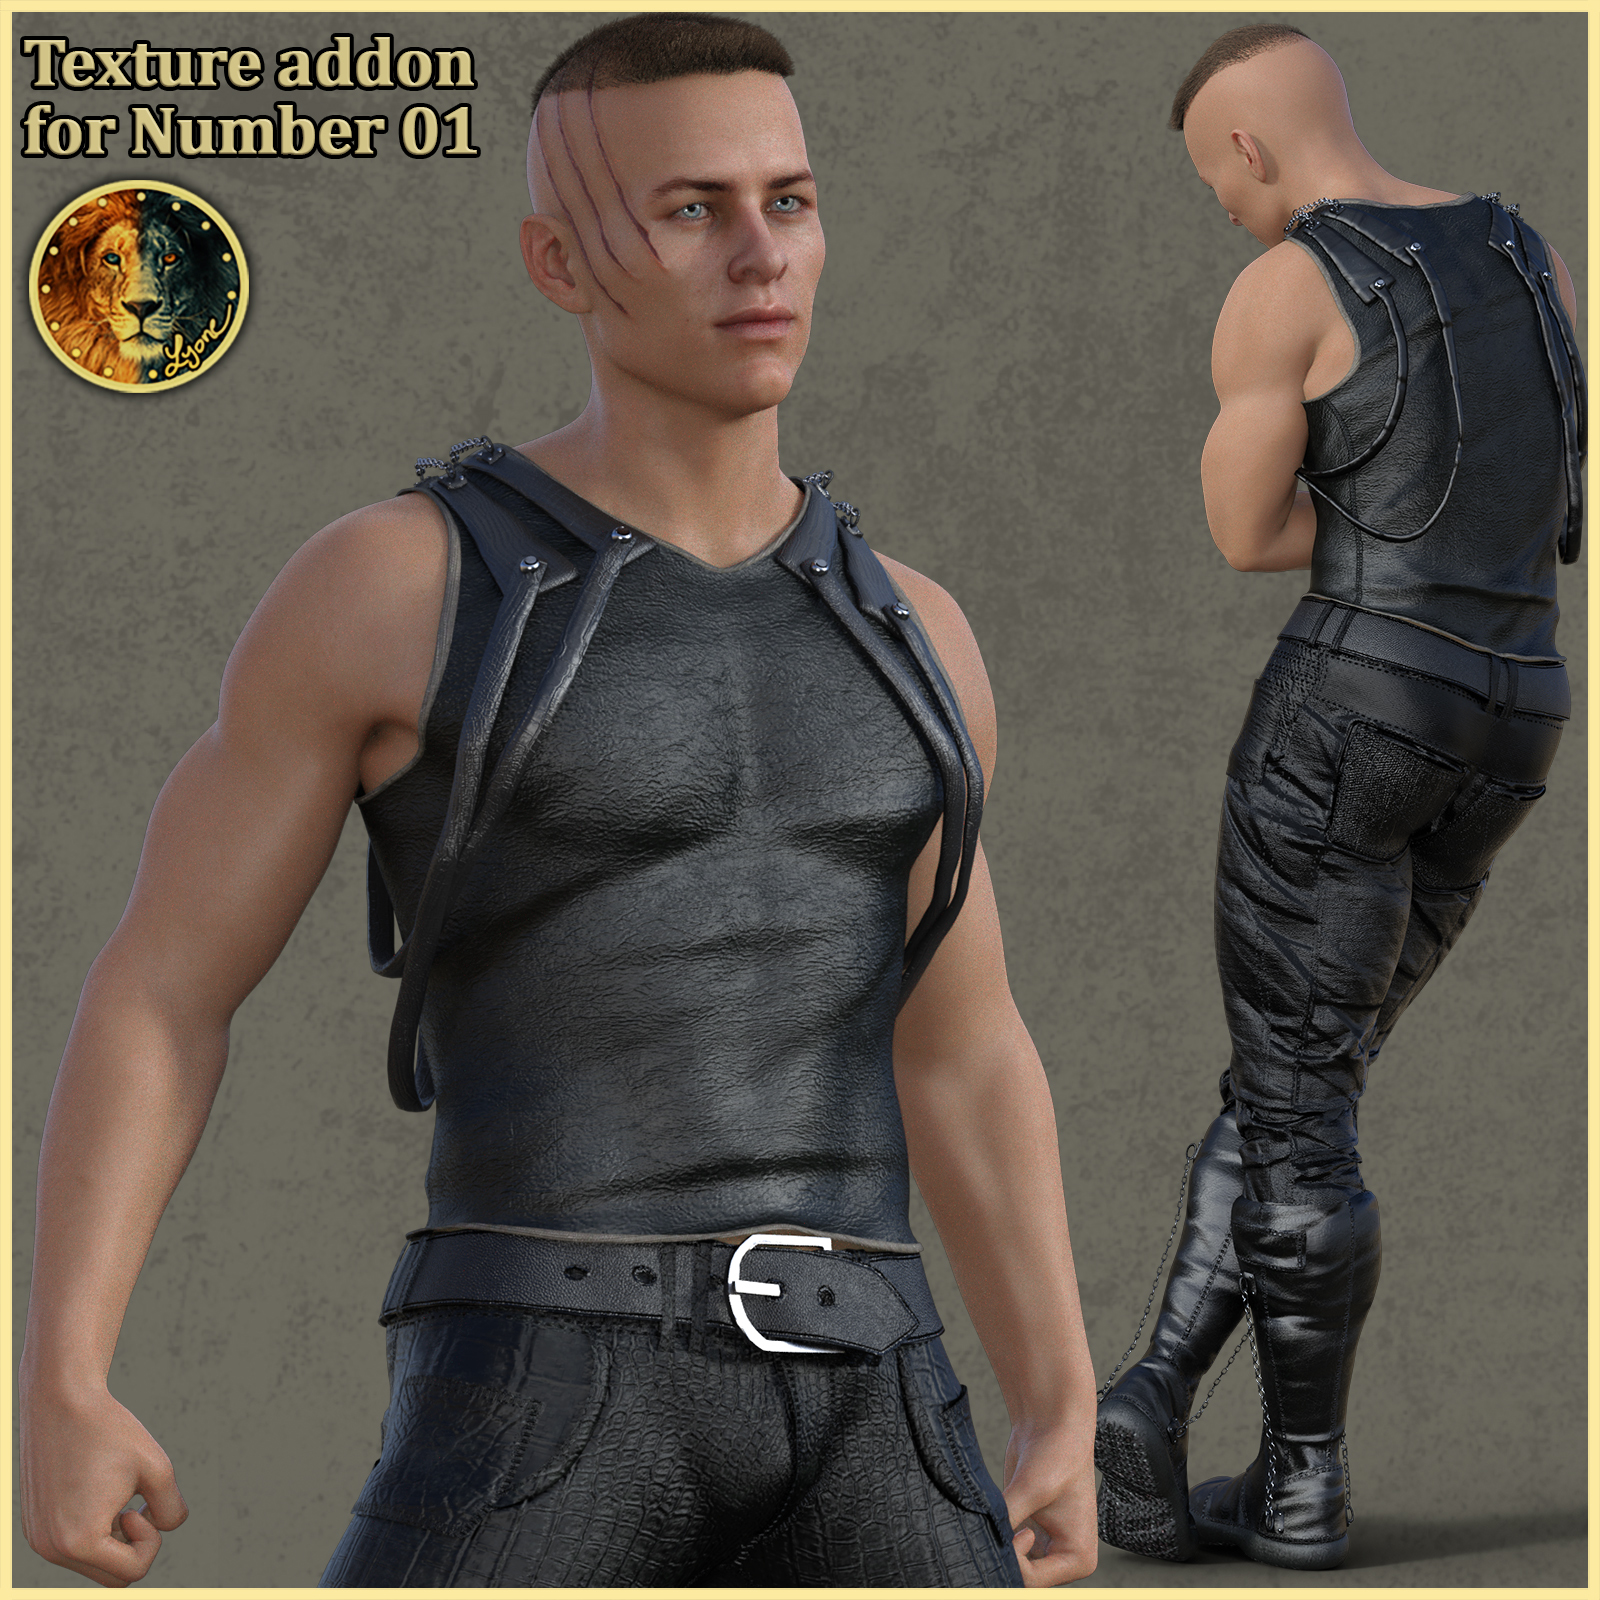 Texture addon for Number 01 outfit for G8M